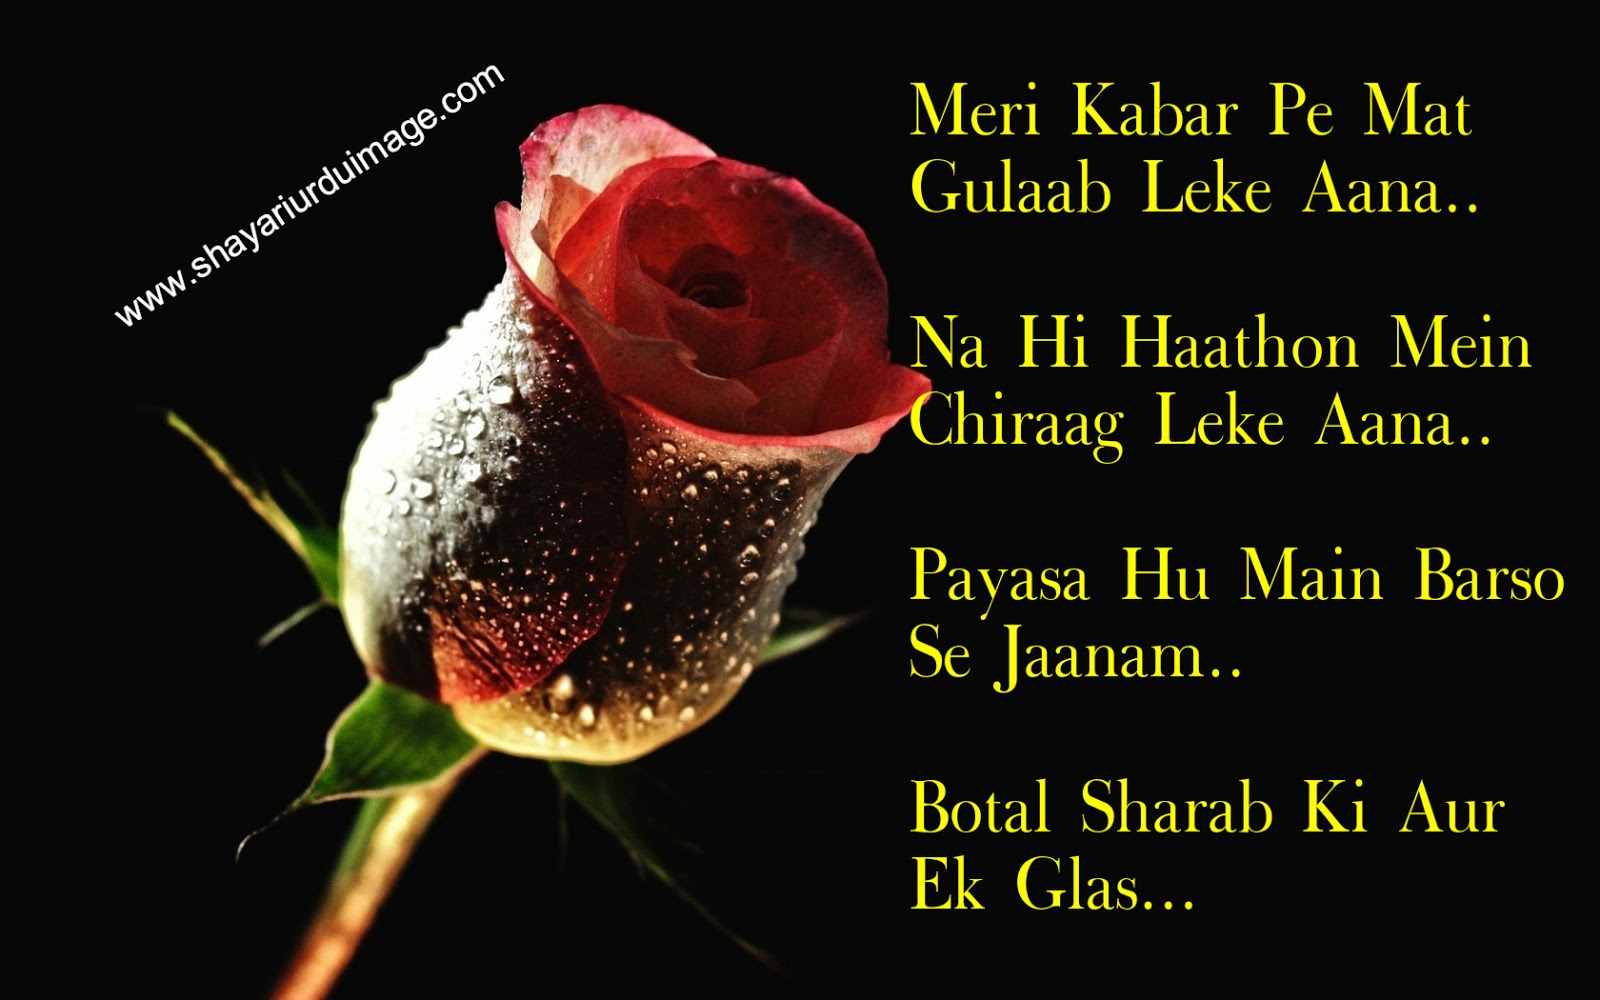 Sad Love Good Night Wallpaper : Shayari Urdu Images,urdu shayari with picture,urdu shayari wallpaper,love shayari urdu,sad love ...